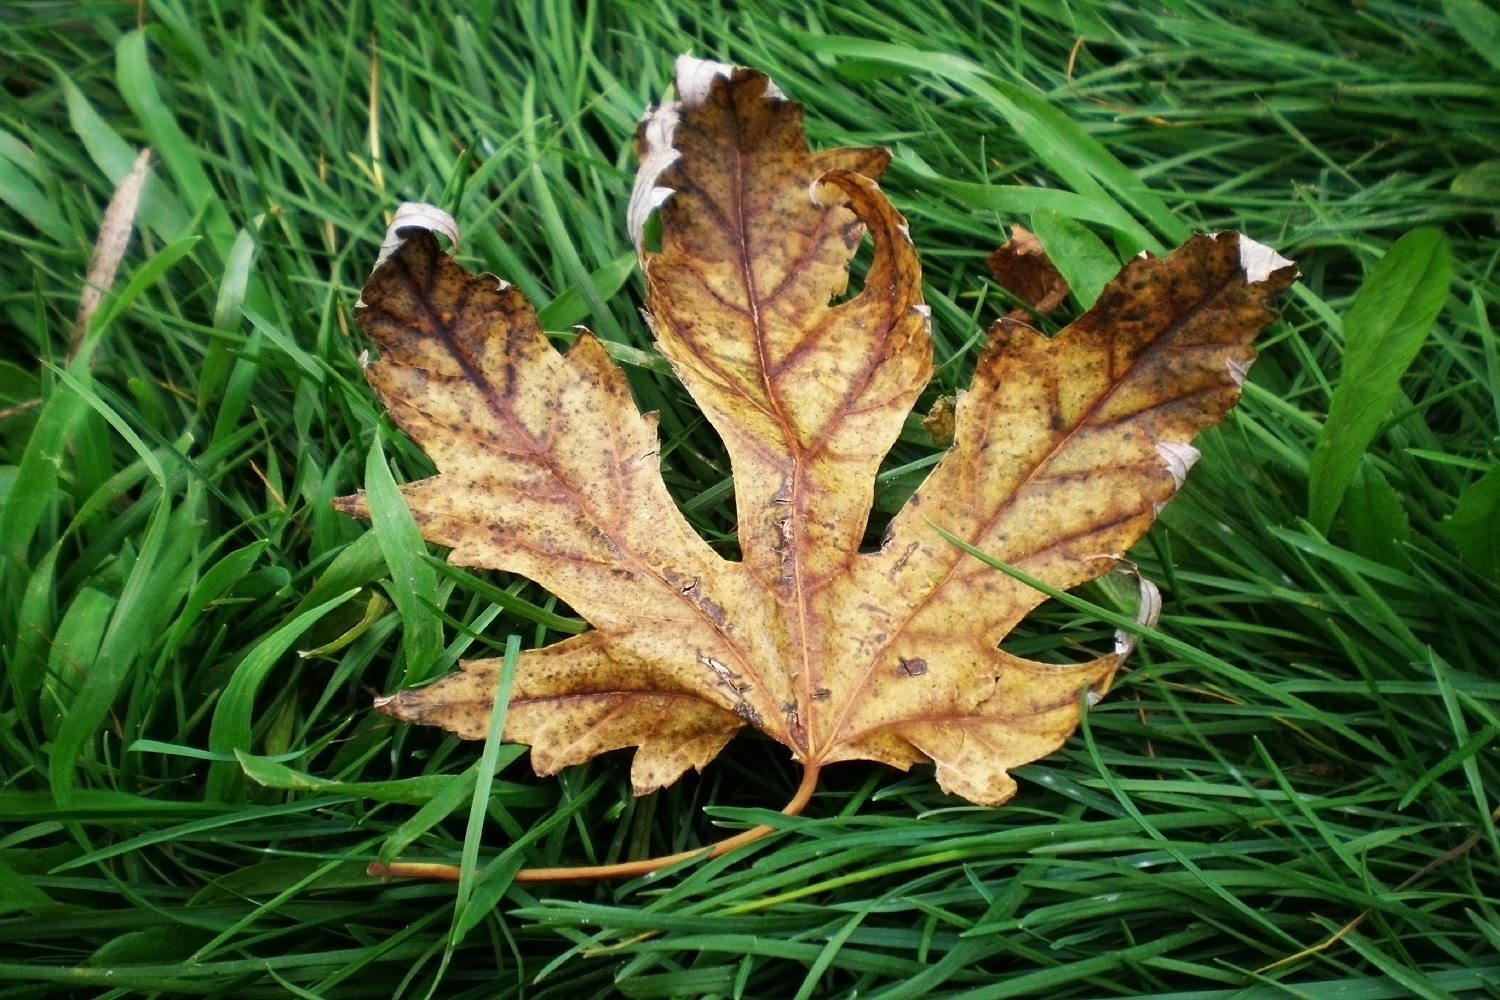 Autumn leaf on the green grass example image 1